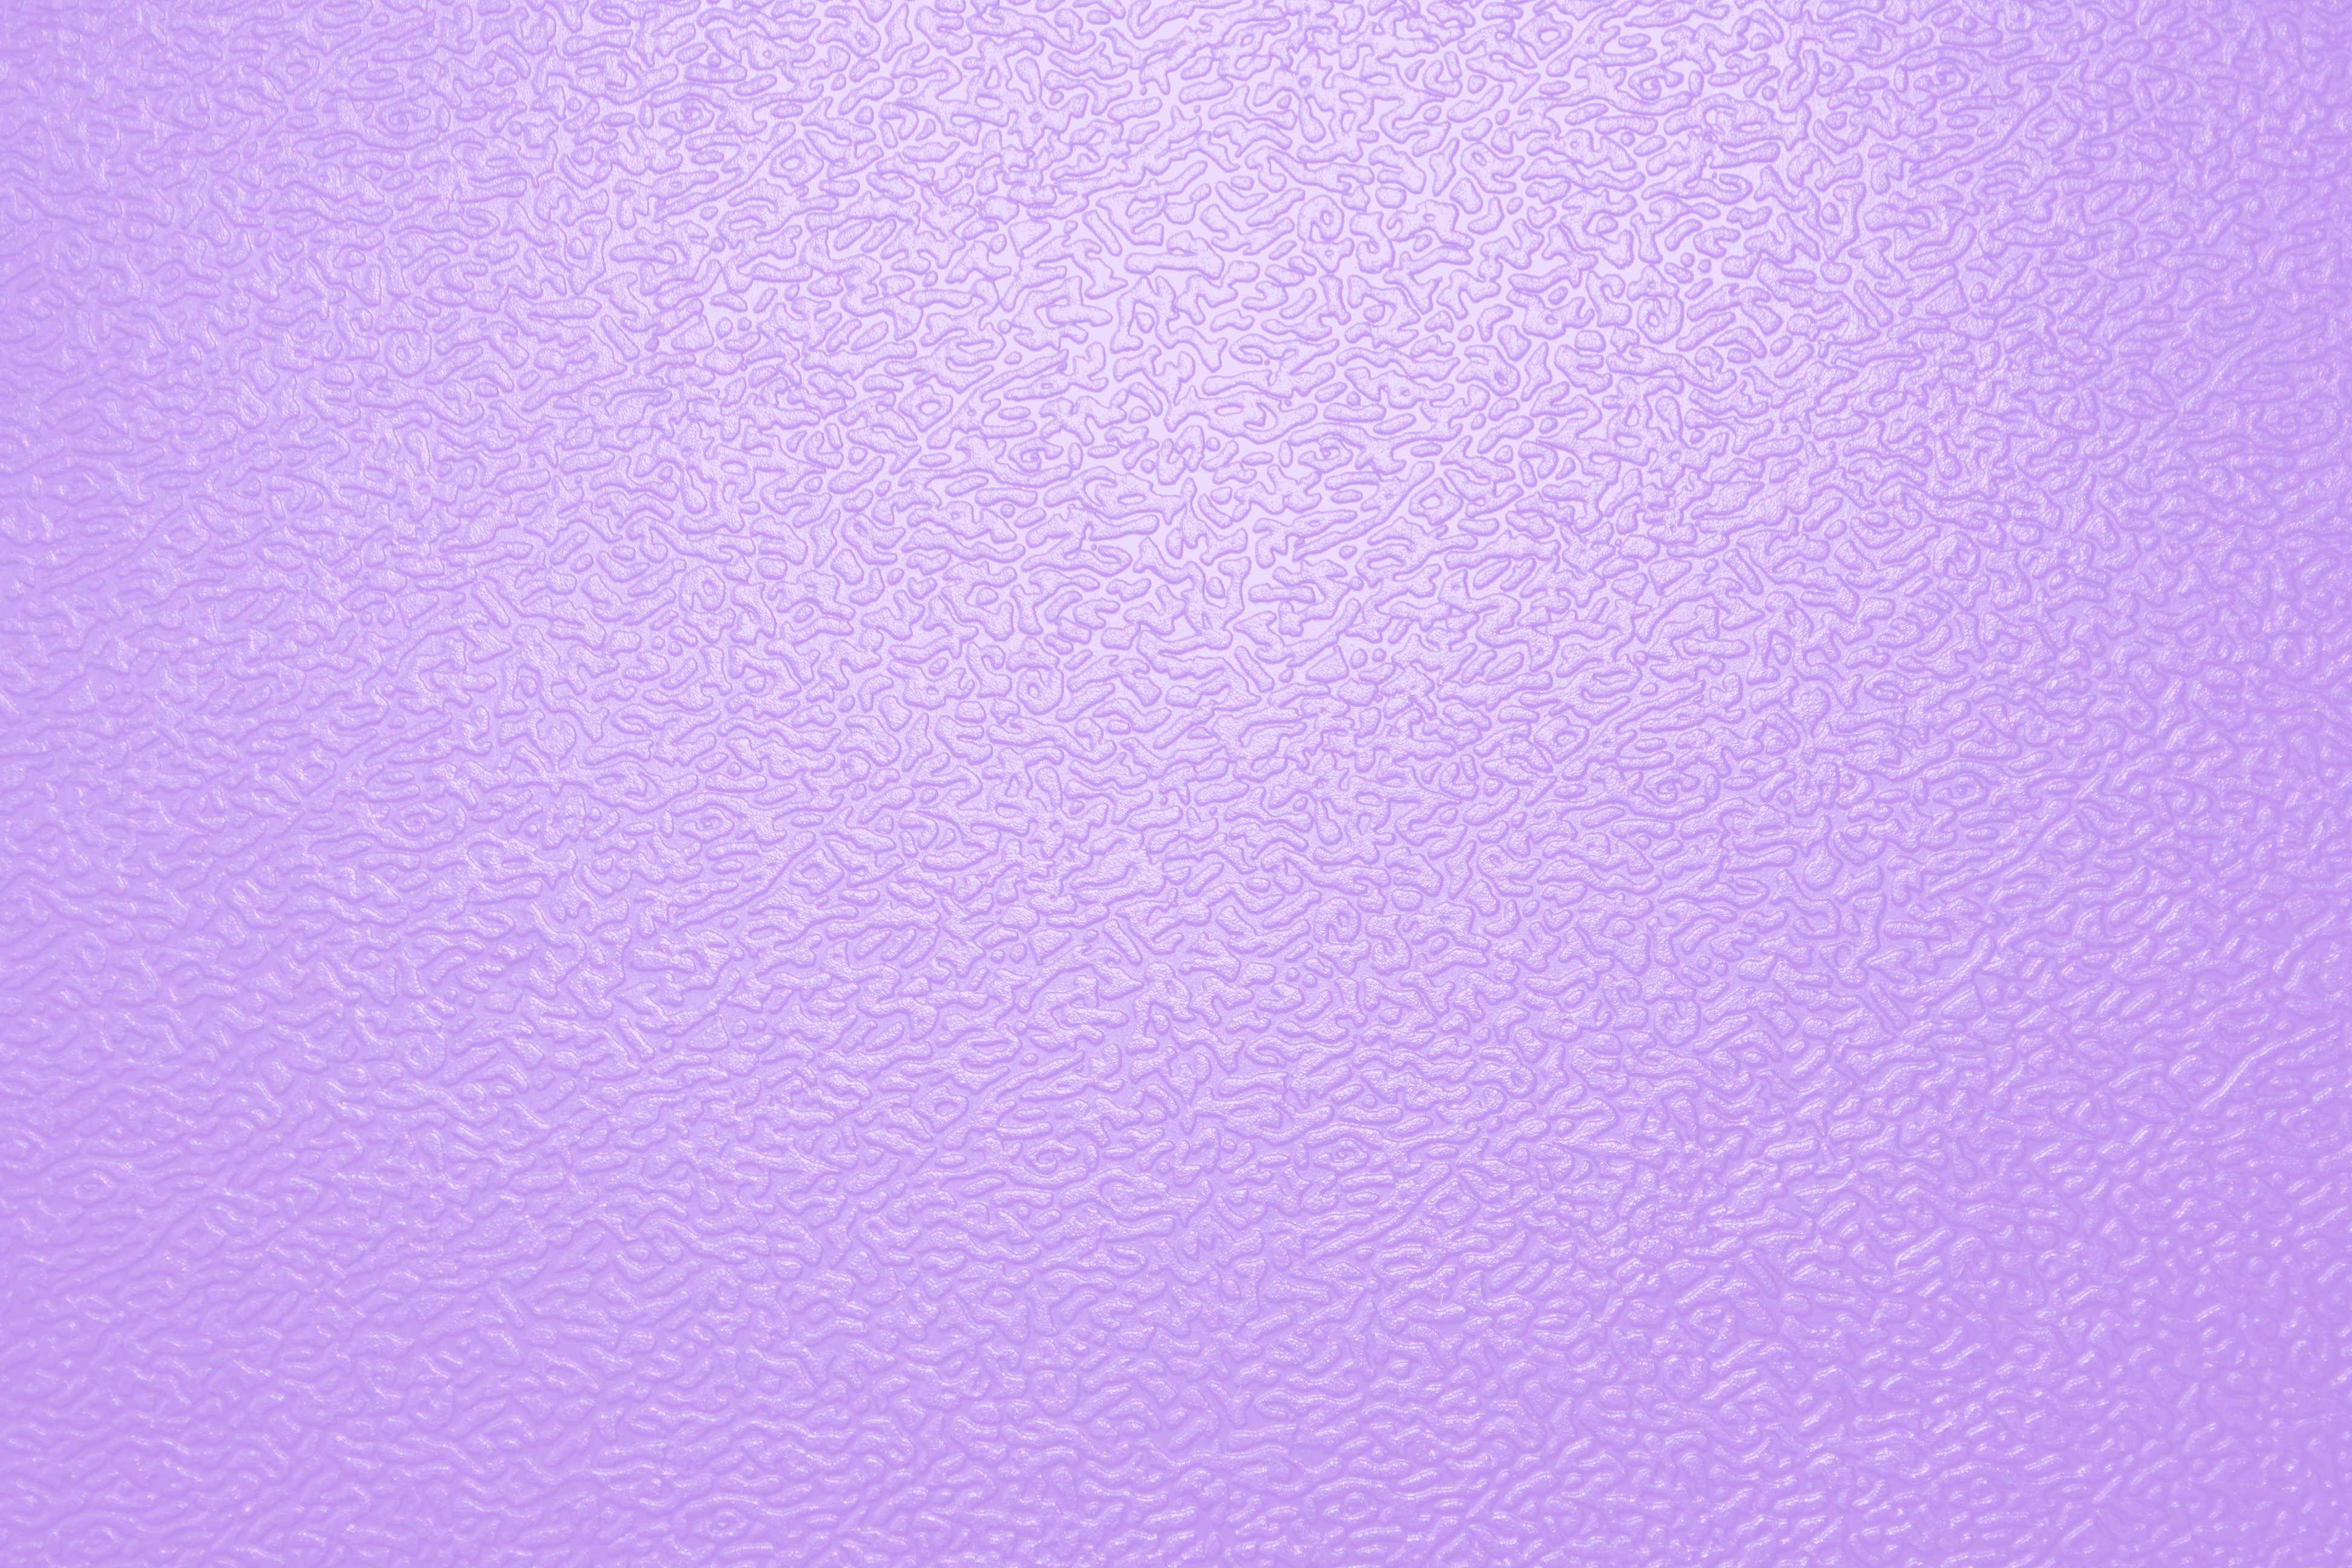 Textured Lavender Plastic Close Up Picture 3888x2592